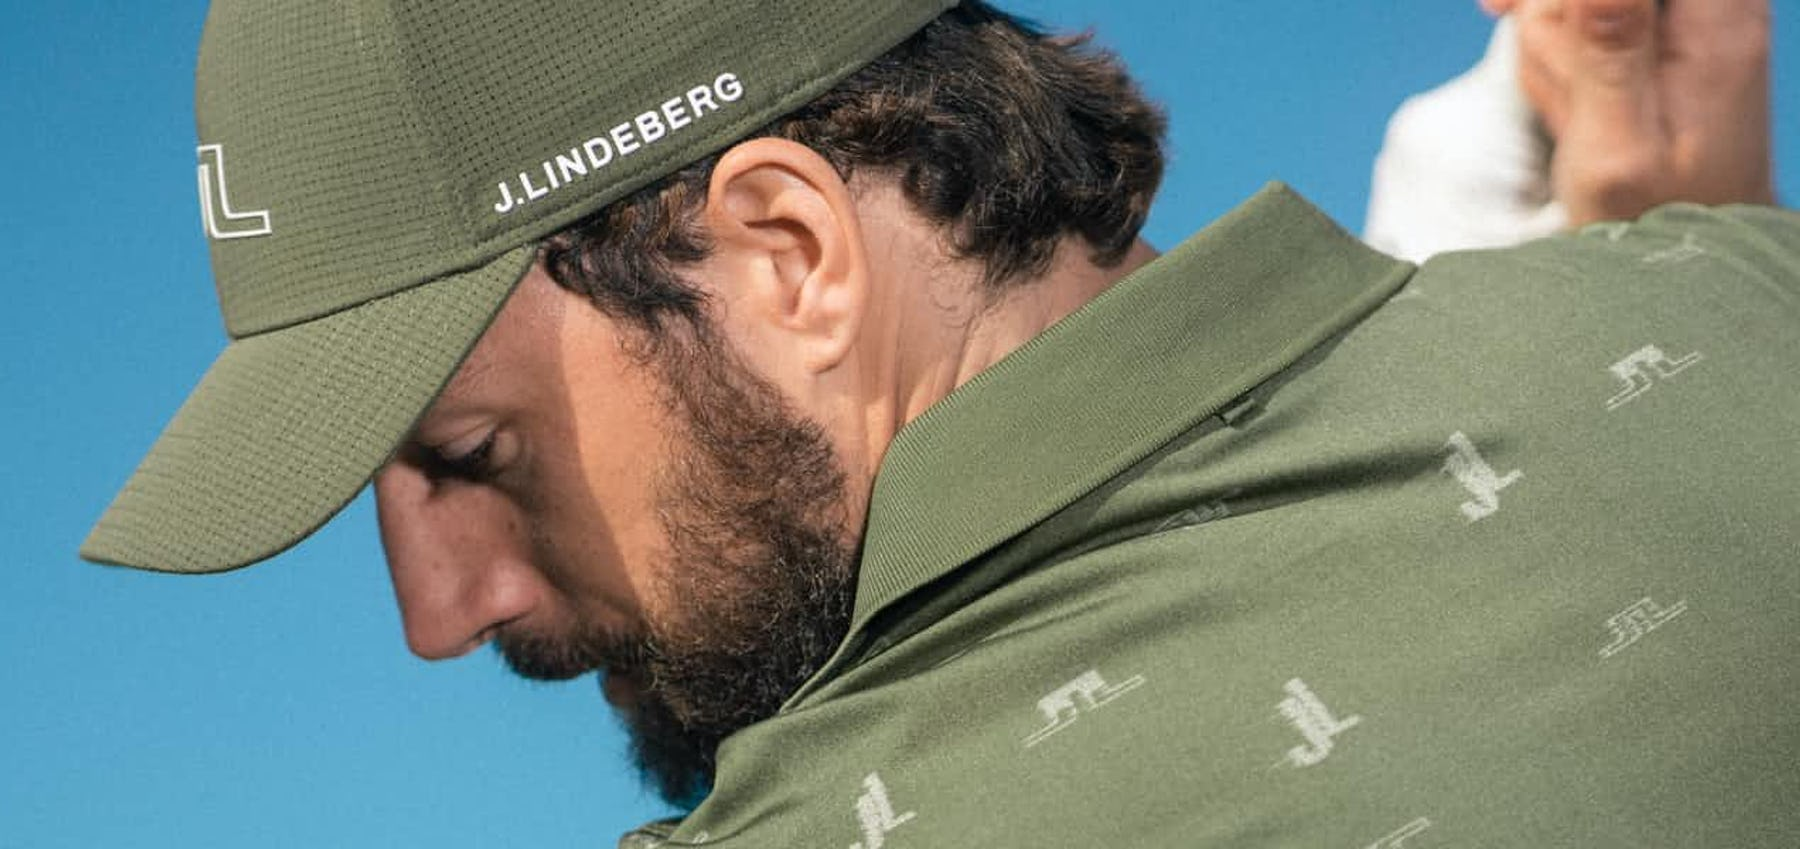 J.Lindeberg Spring/Summer '21 Collection   The lightest collection in golf. Ever.